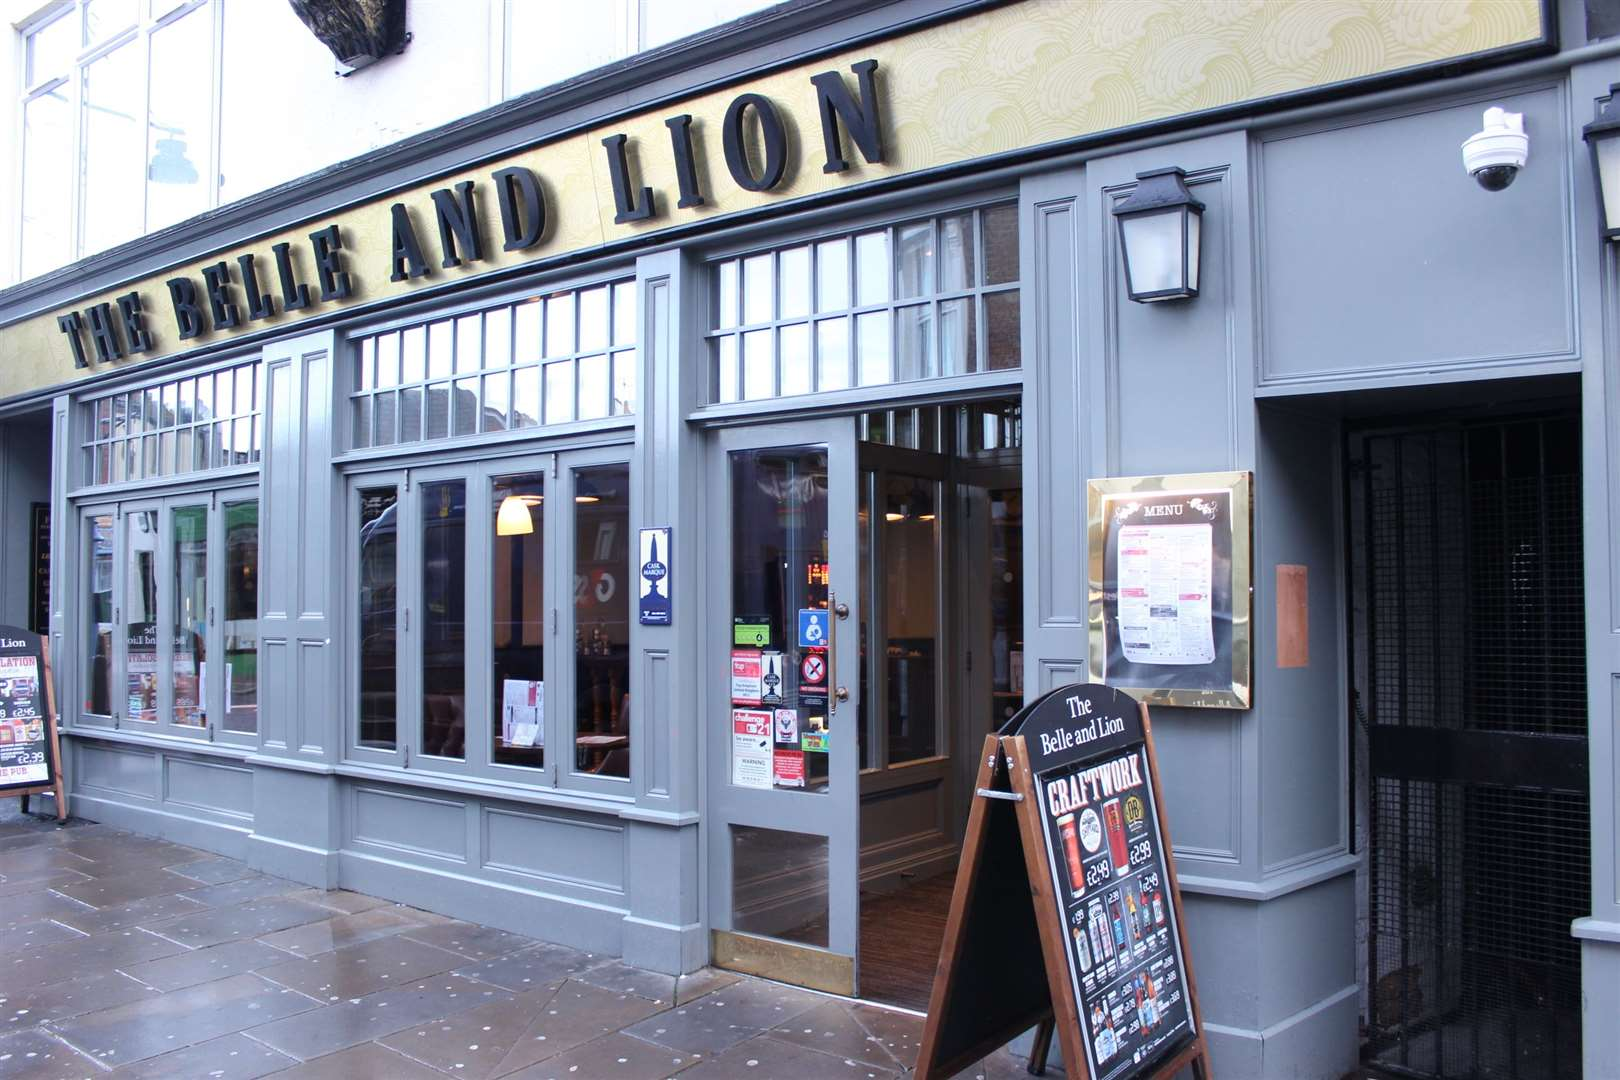 Kent has 23 Wetherspoons, including the Belle and Lion pub in Sheerness High Street